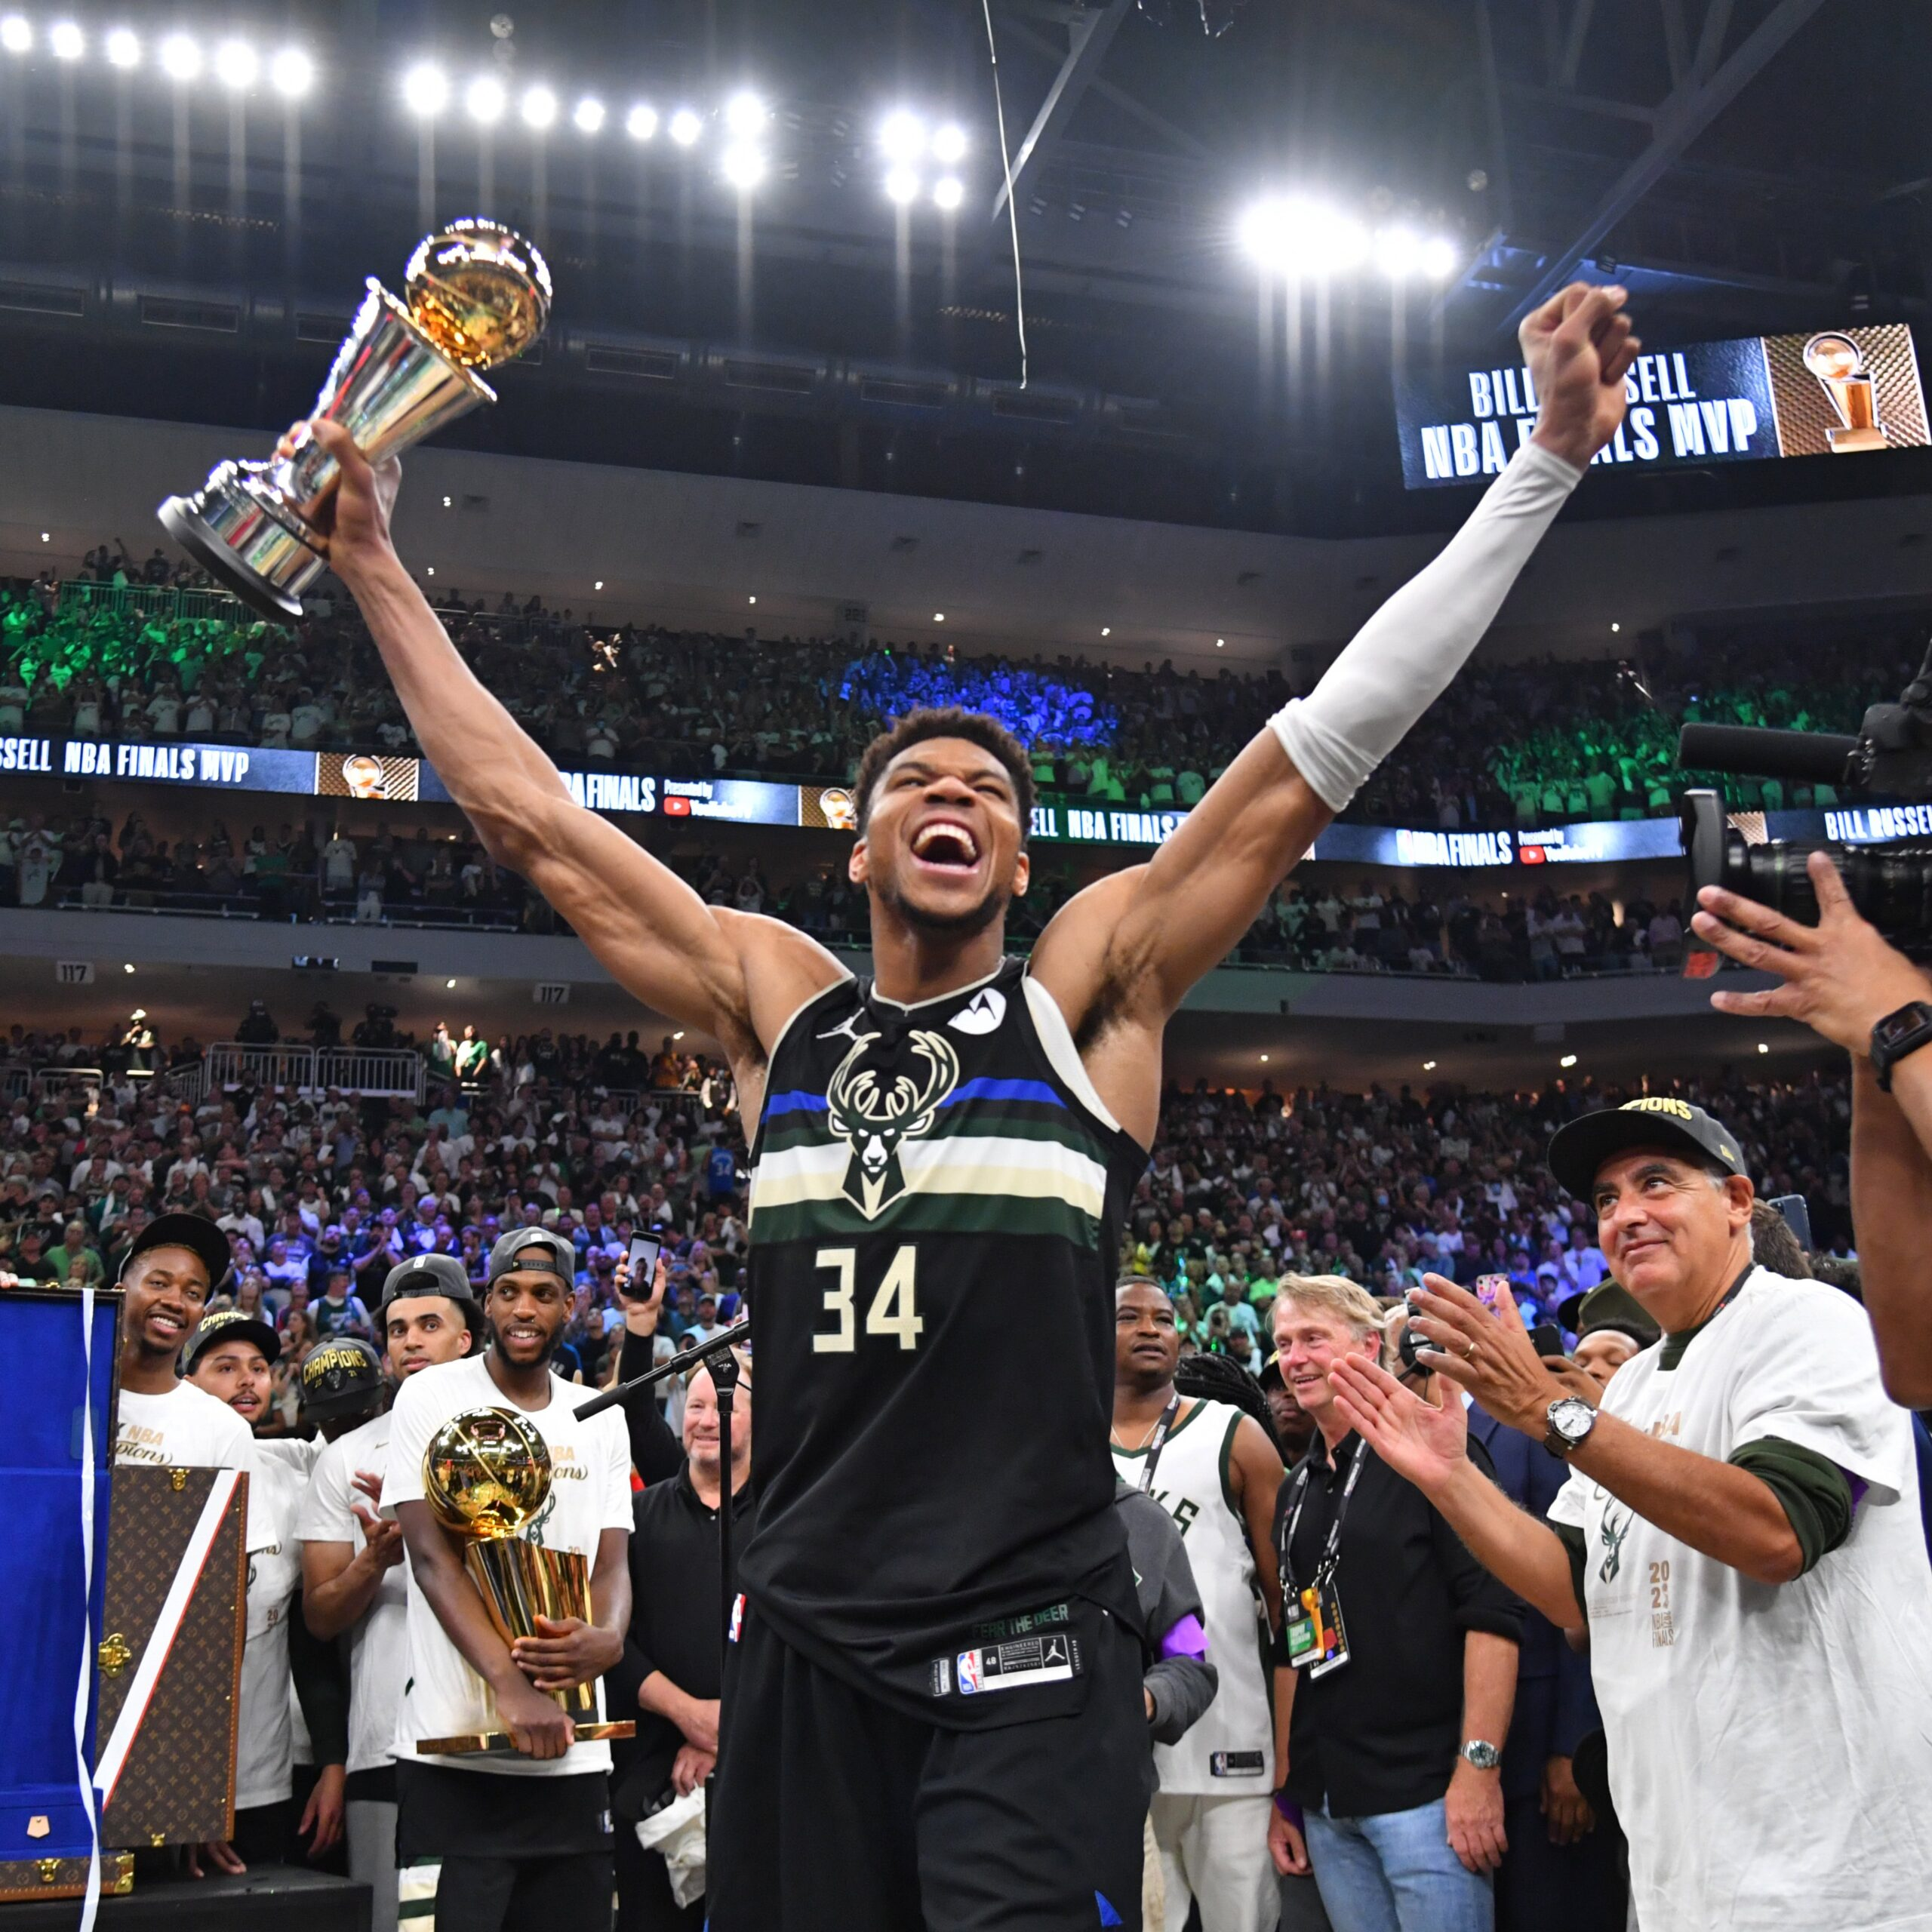 Key Stats from 2021 NBA finals Game 6 between Bucks and Suns